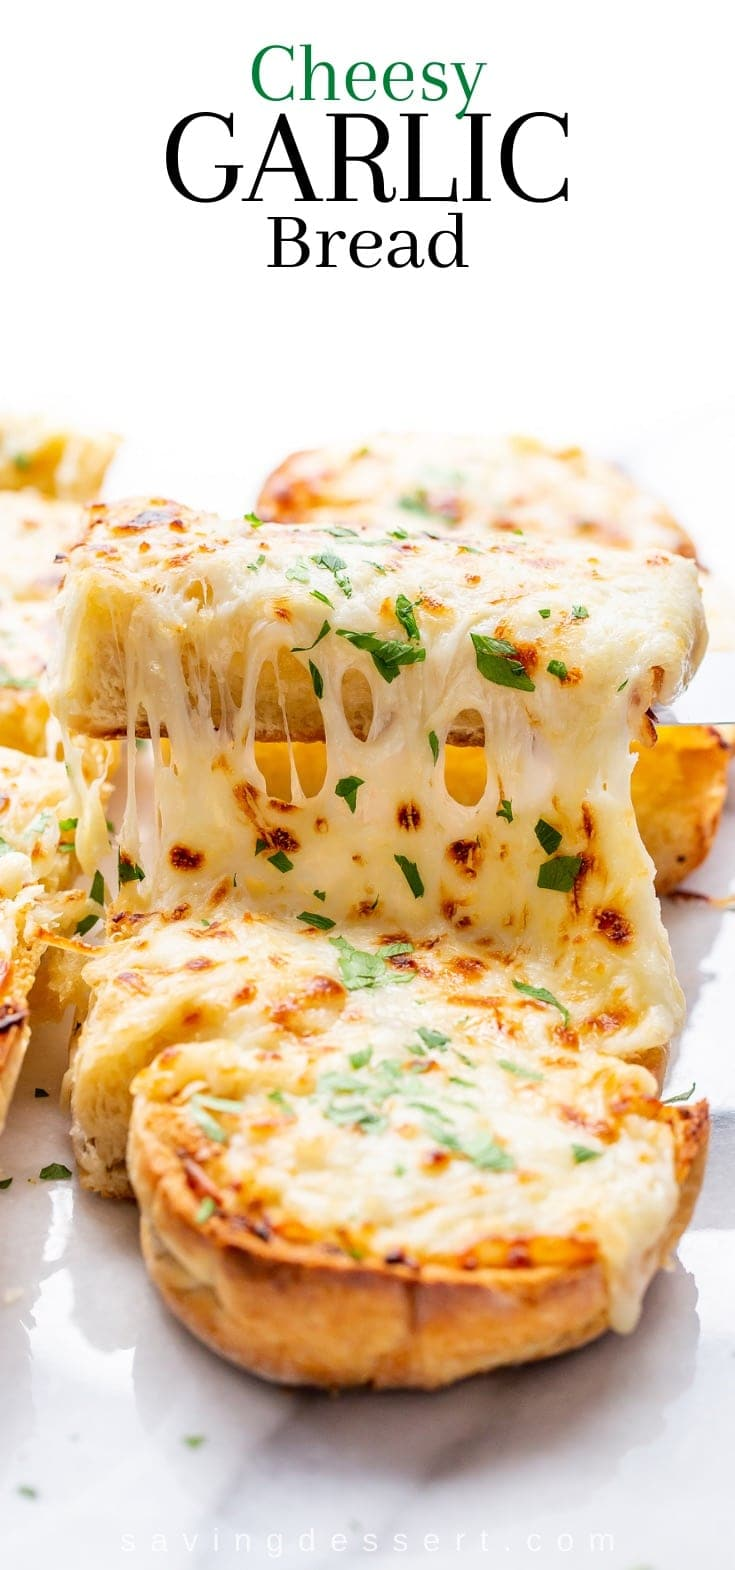 Sliced garlic bread topped with melted cheese and parsley